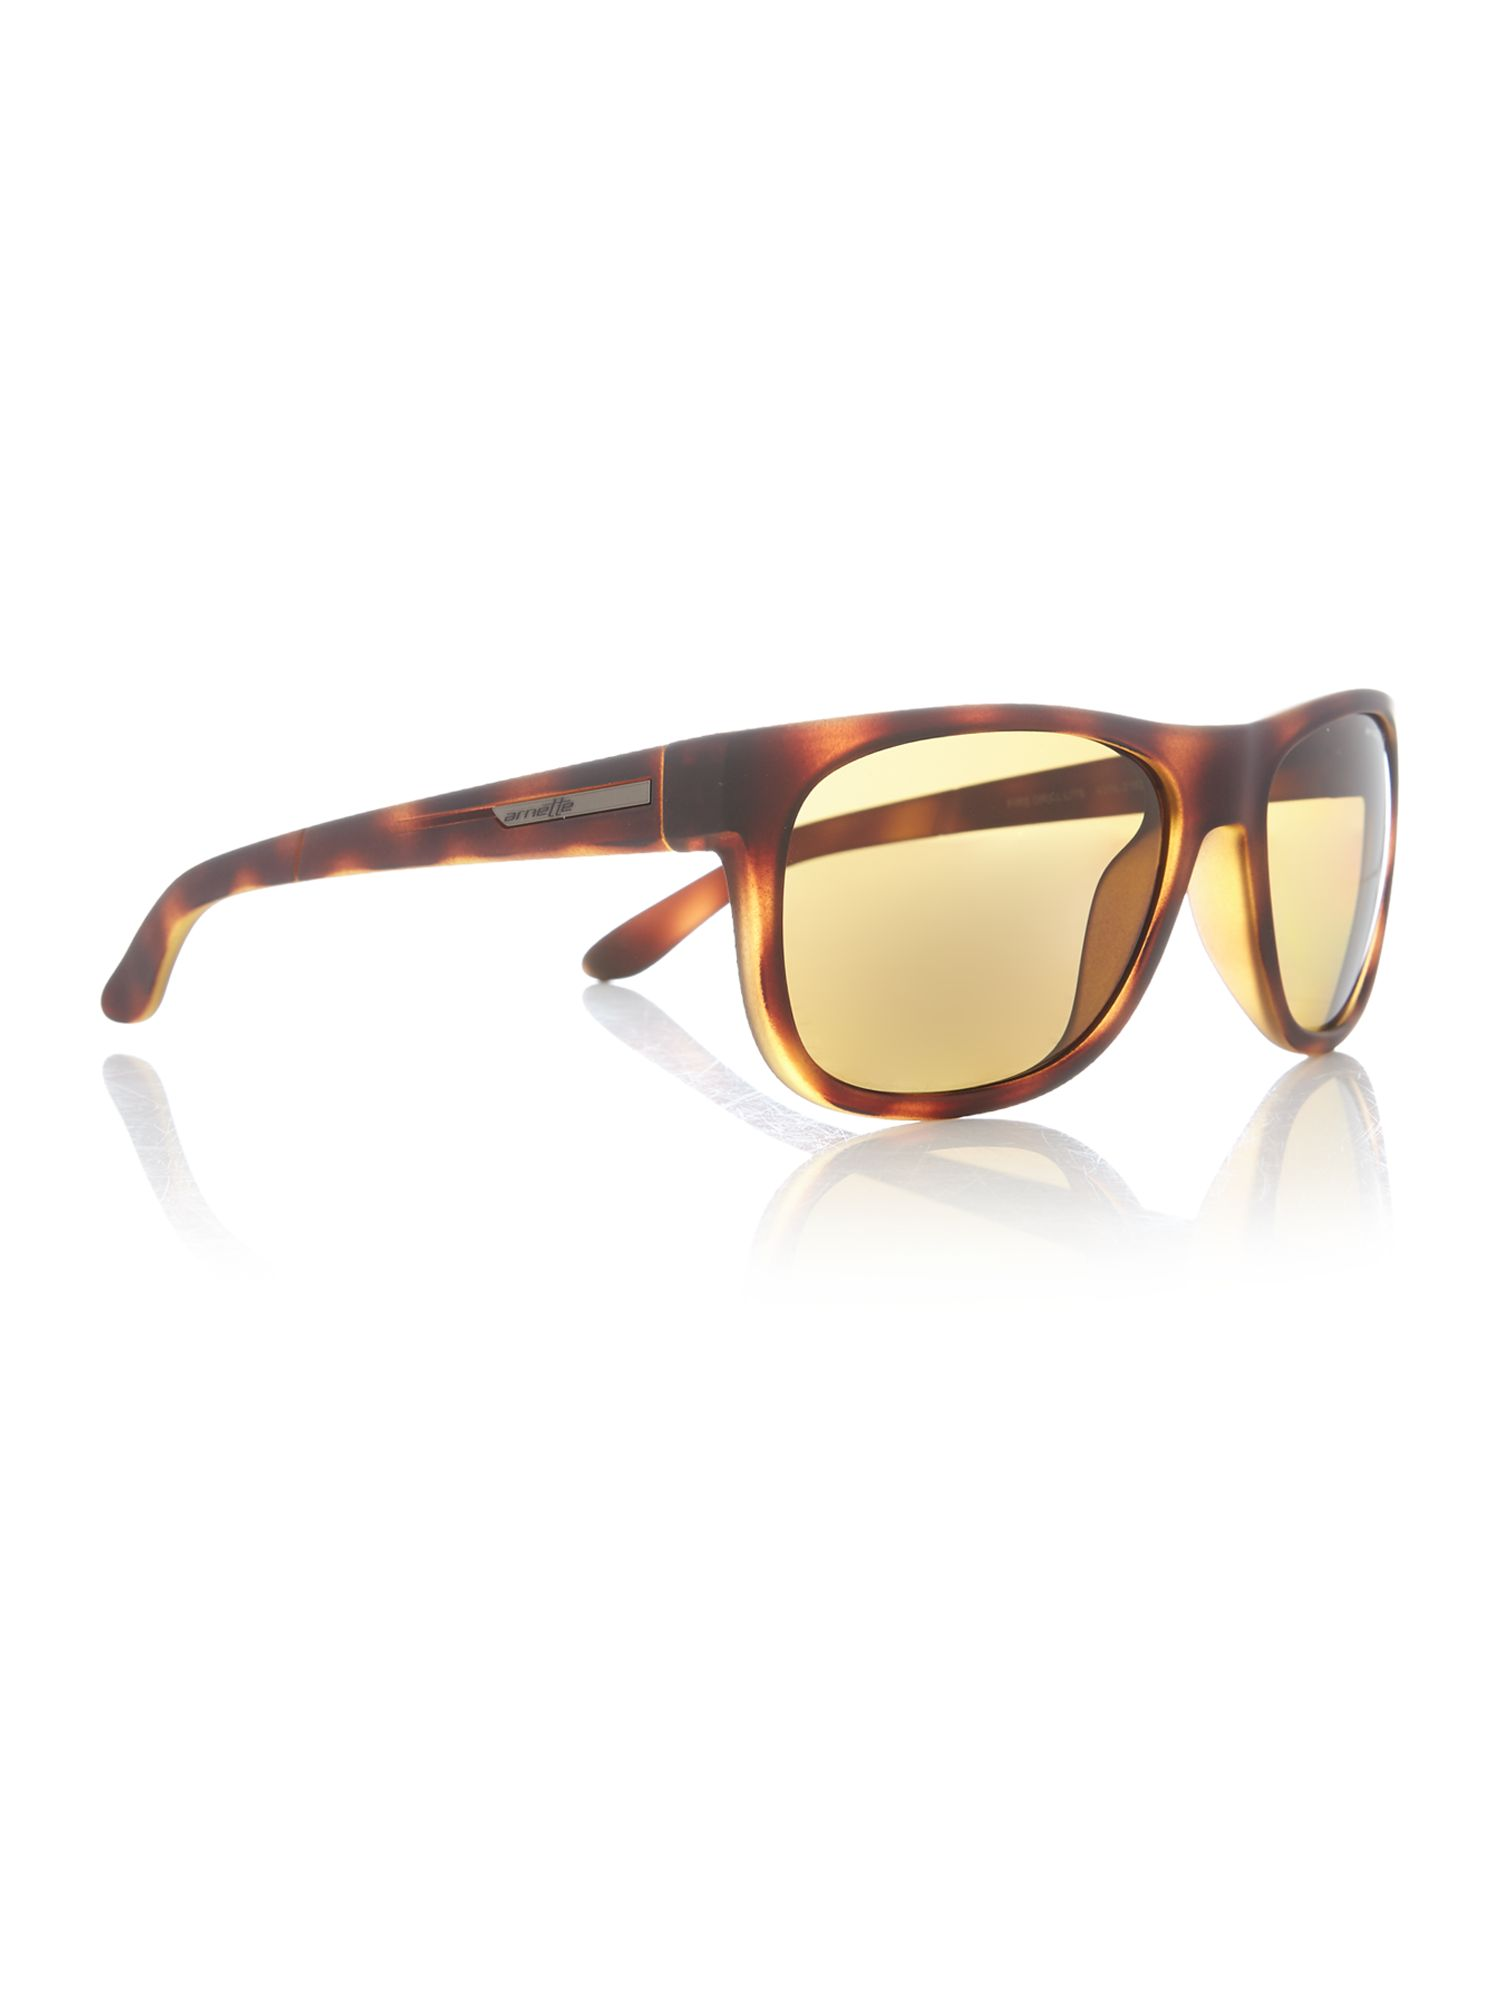 Arnette AN4206 square sunglasses